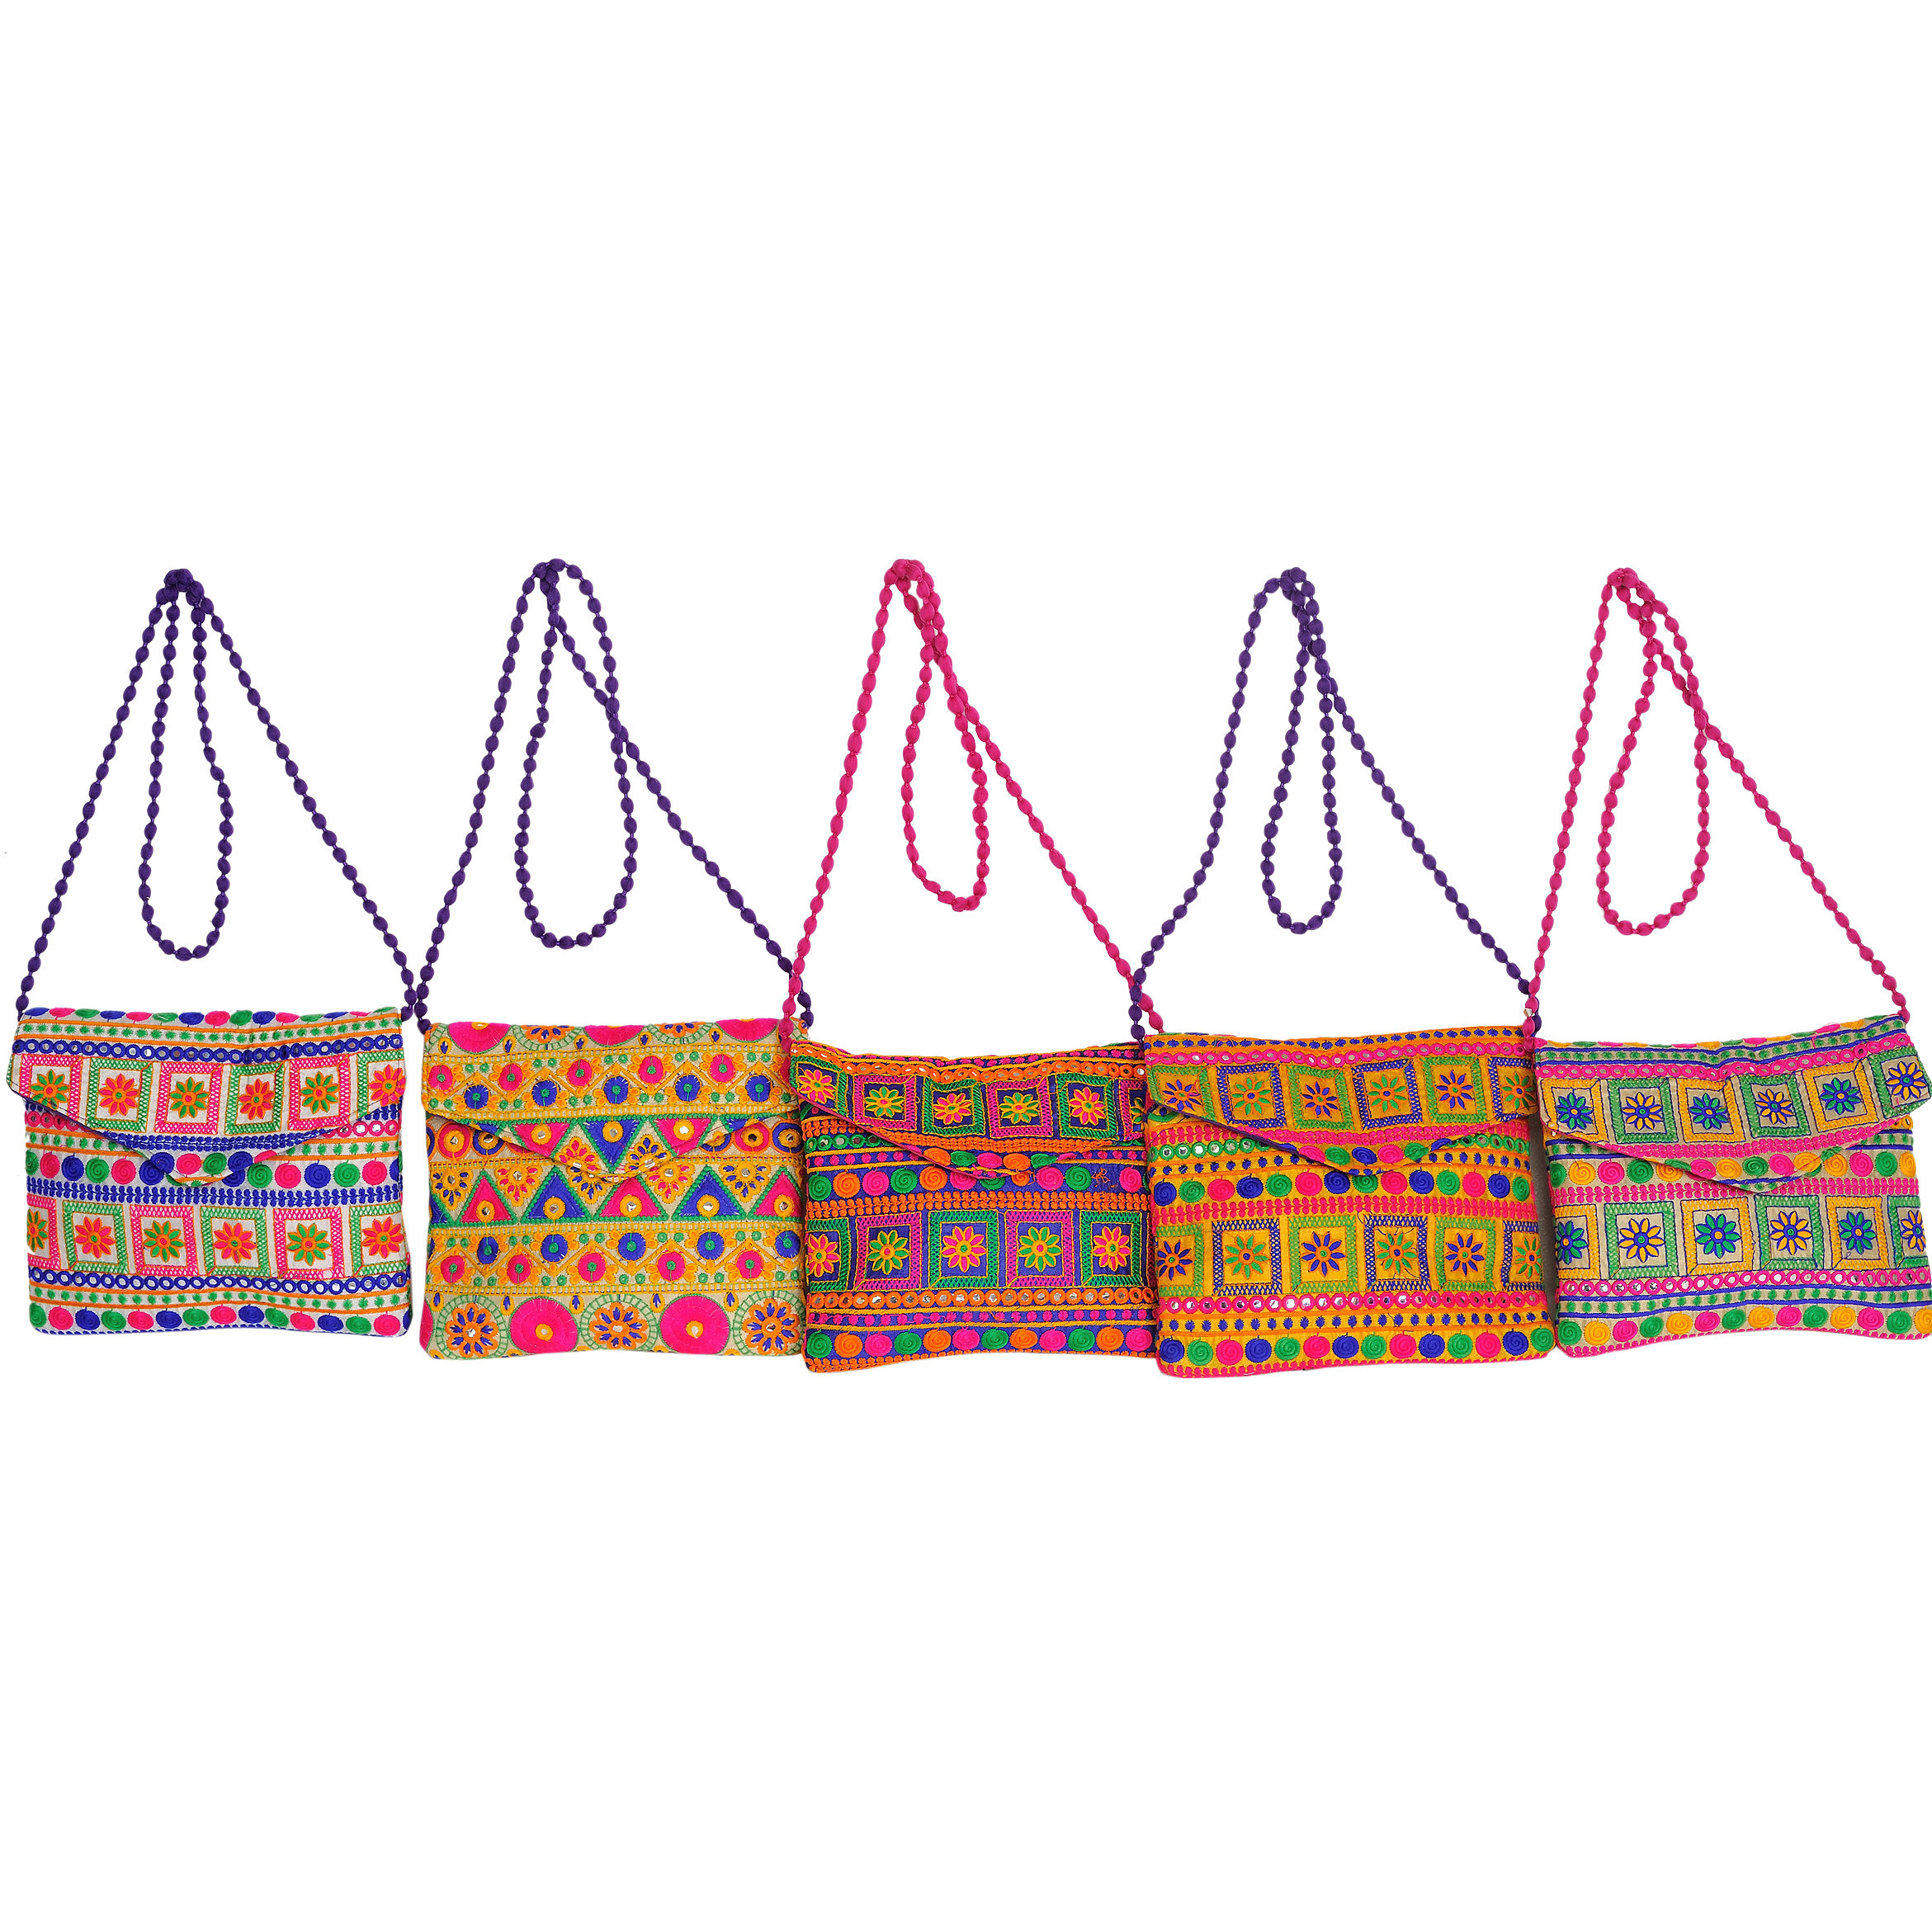 Lot of Five Clutch Bags with Thread Embroidery in Multi-Colored Thread